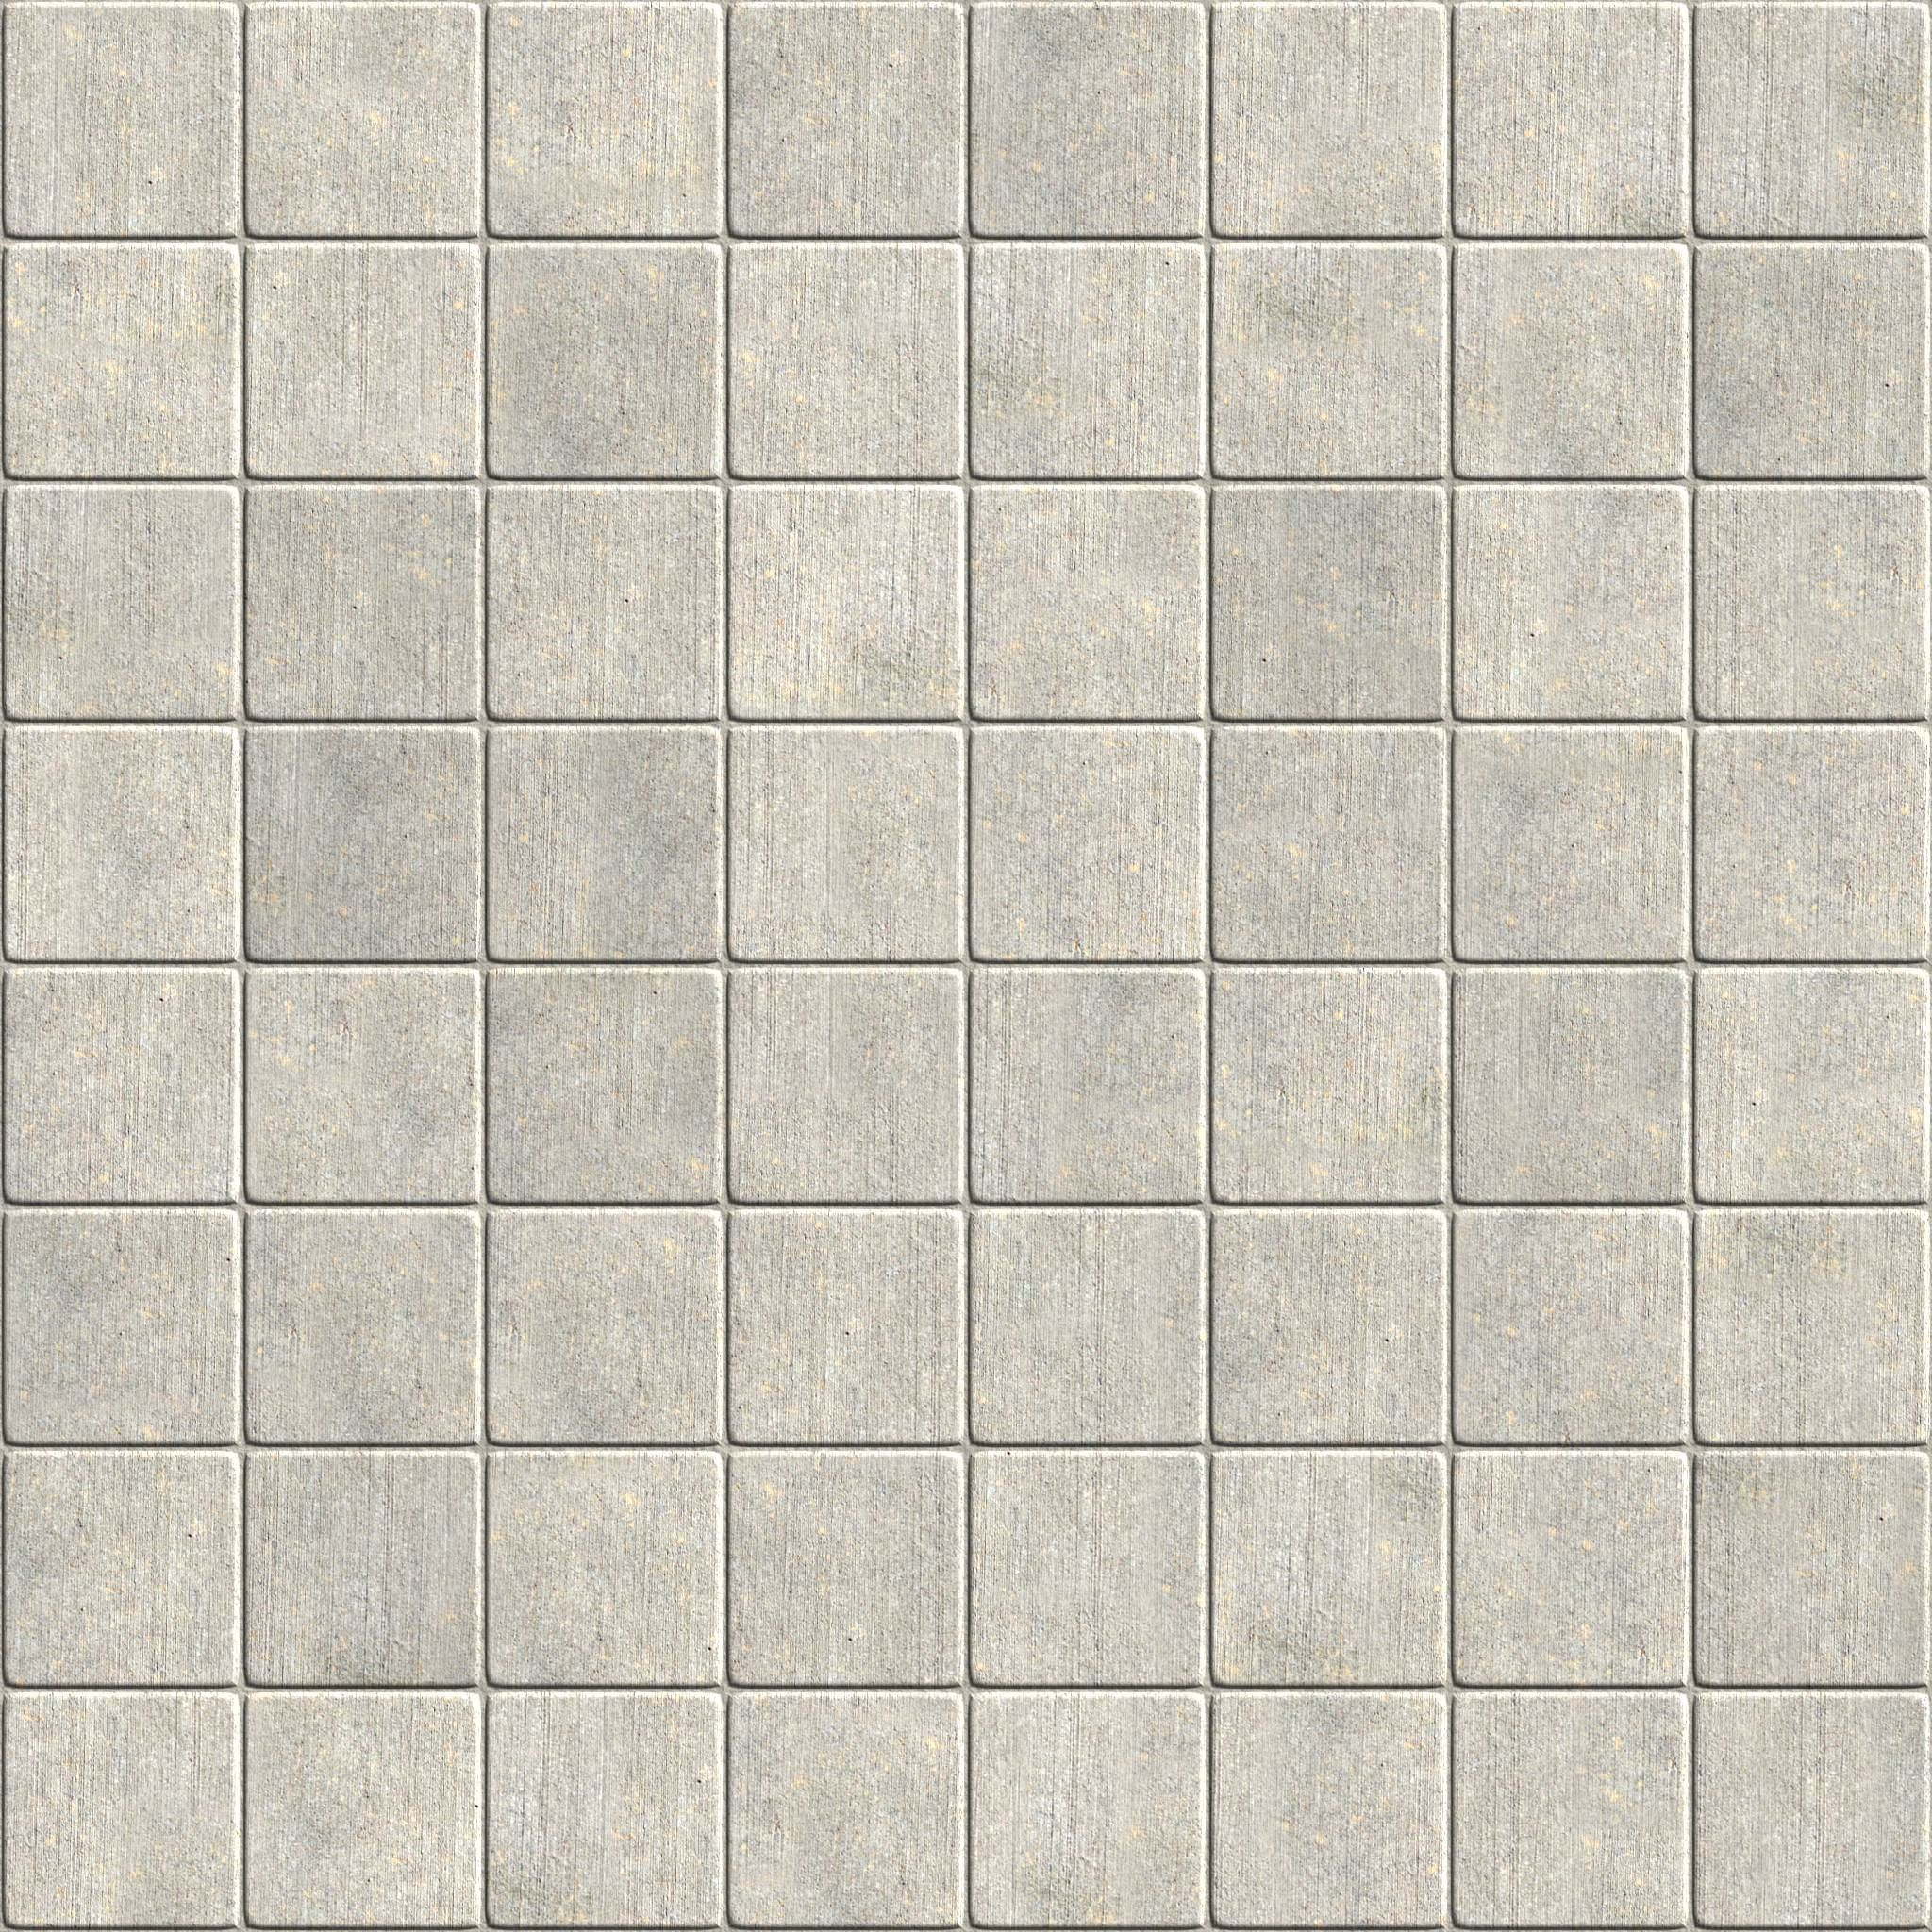 Pin modern tile floor texture simple textured bathroom on pinterest - Latest Posts Under Bathroom Wall Tile